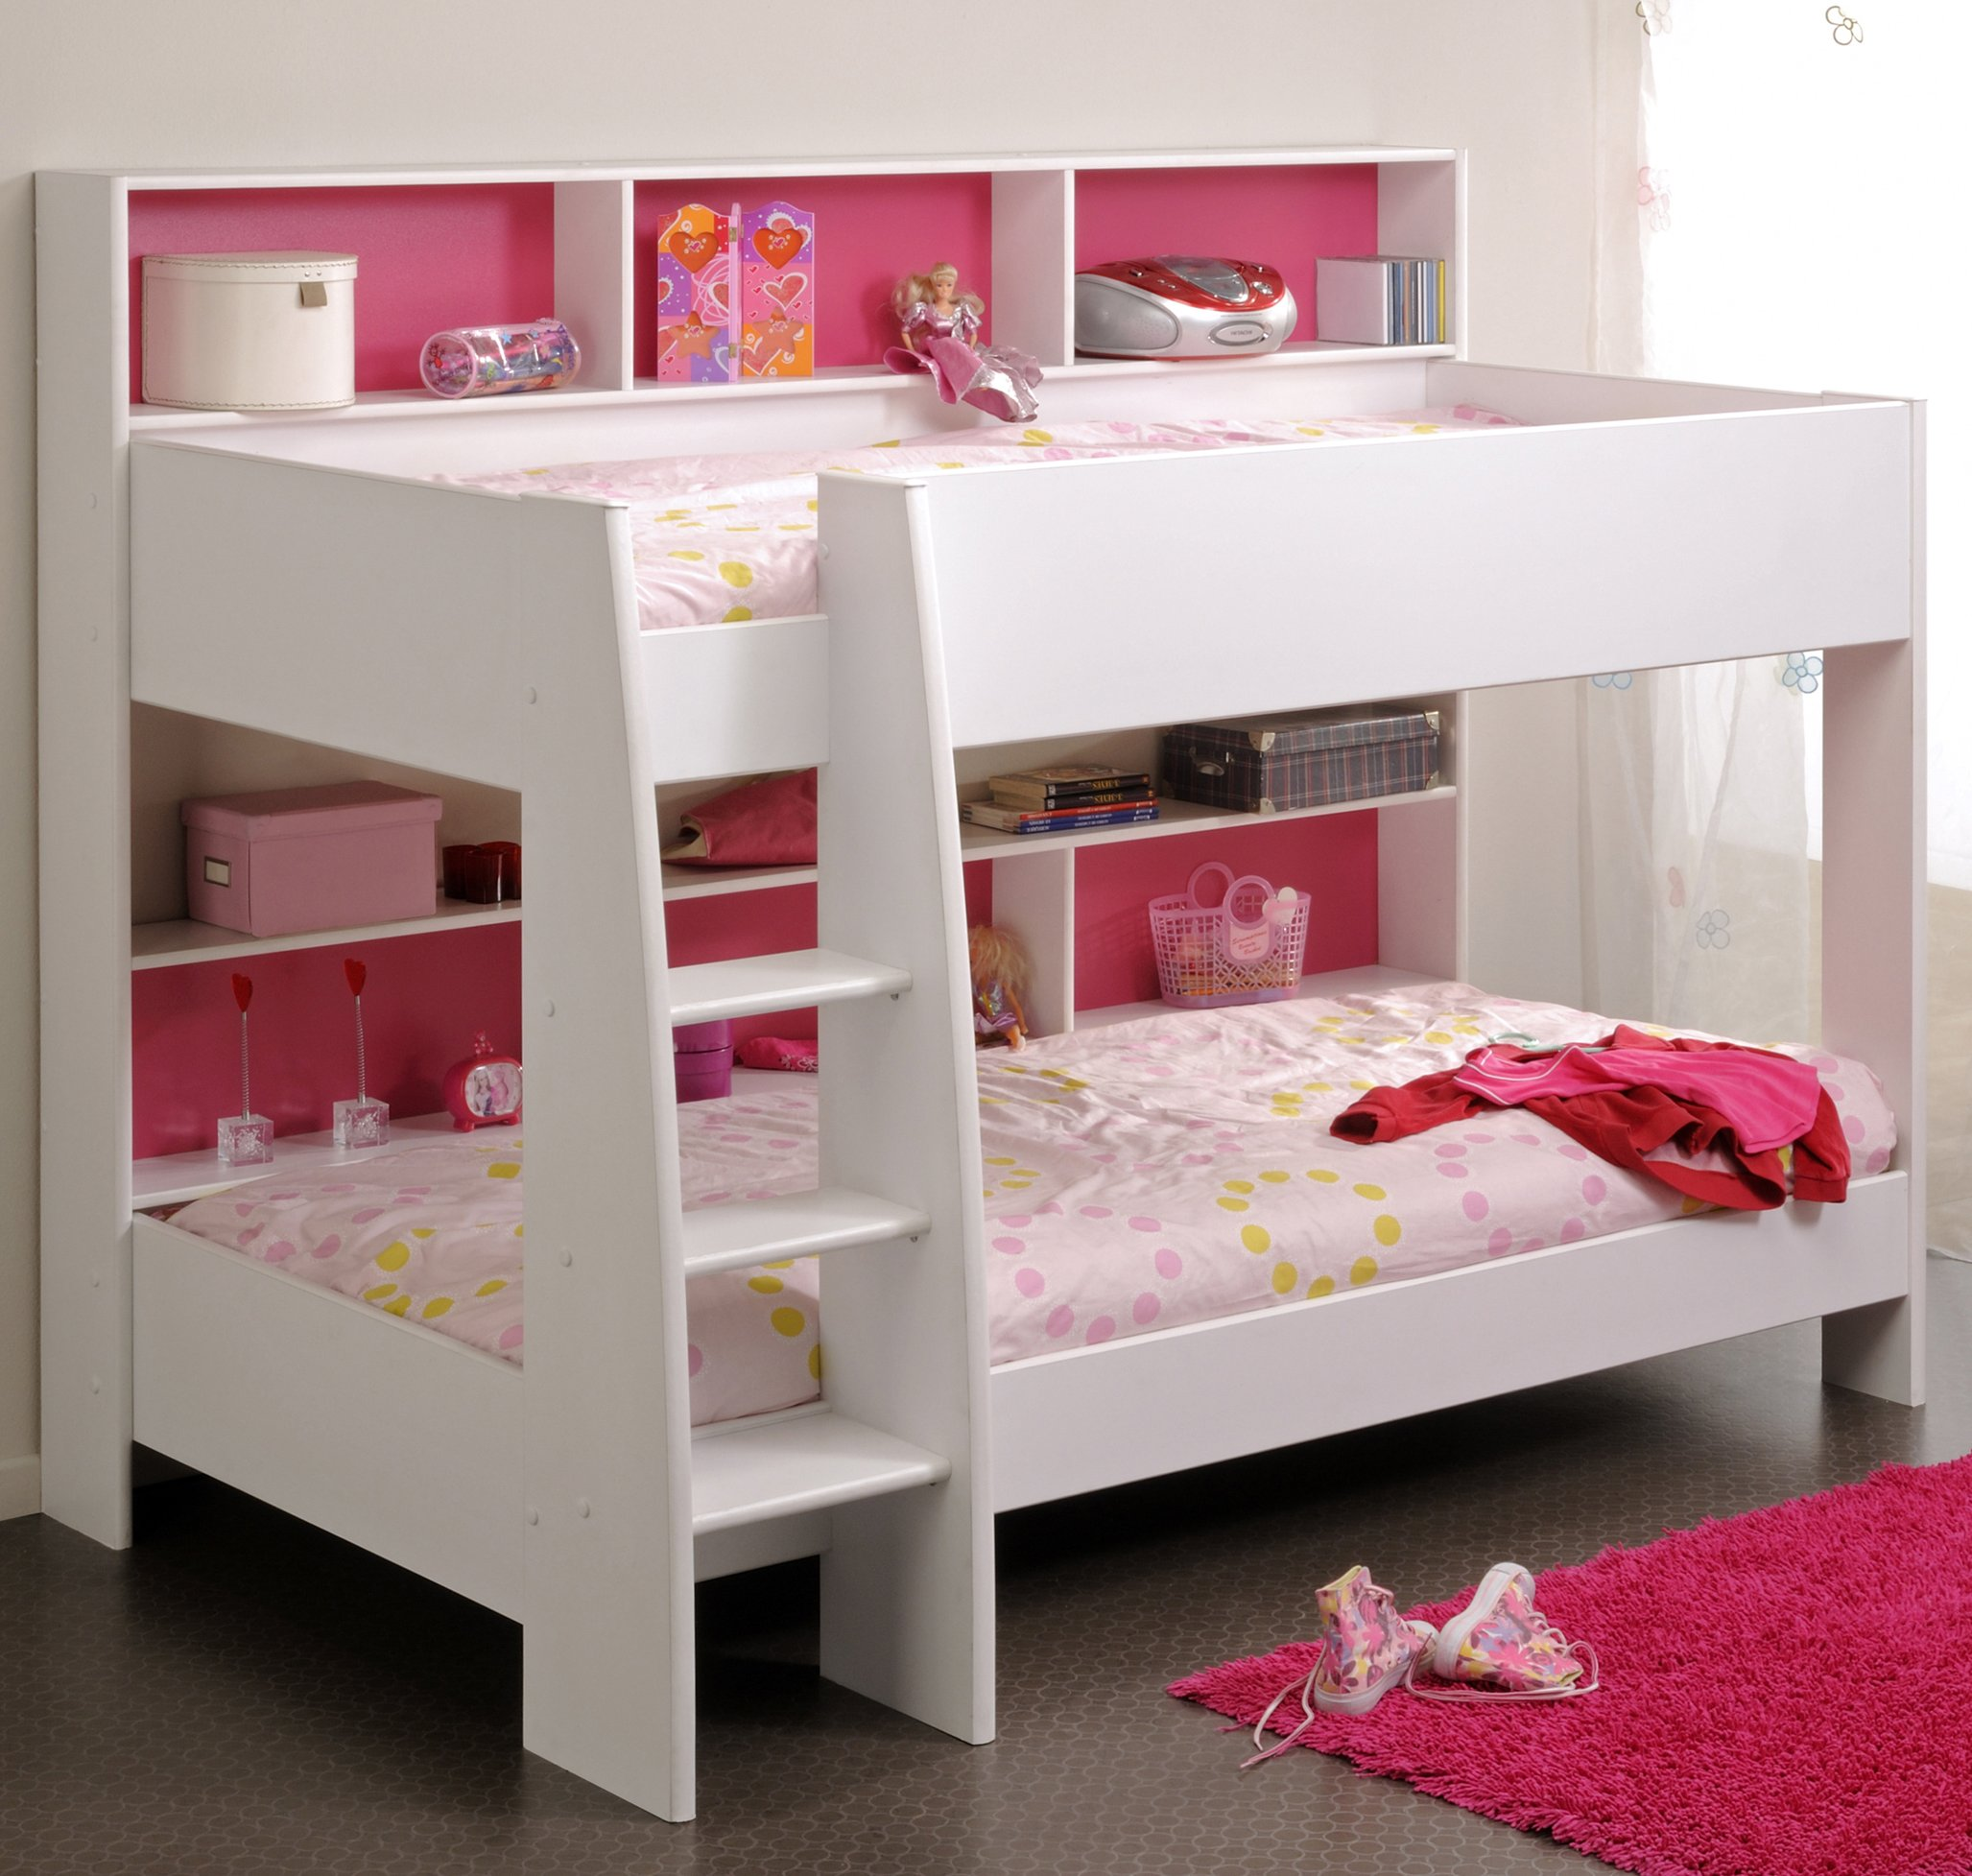 Parker white bunk bed for children kids in s a - Double deck bed designs for small spaces pict ...